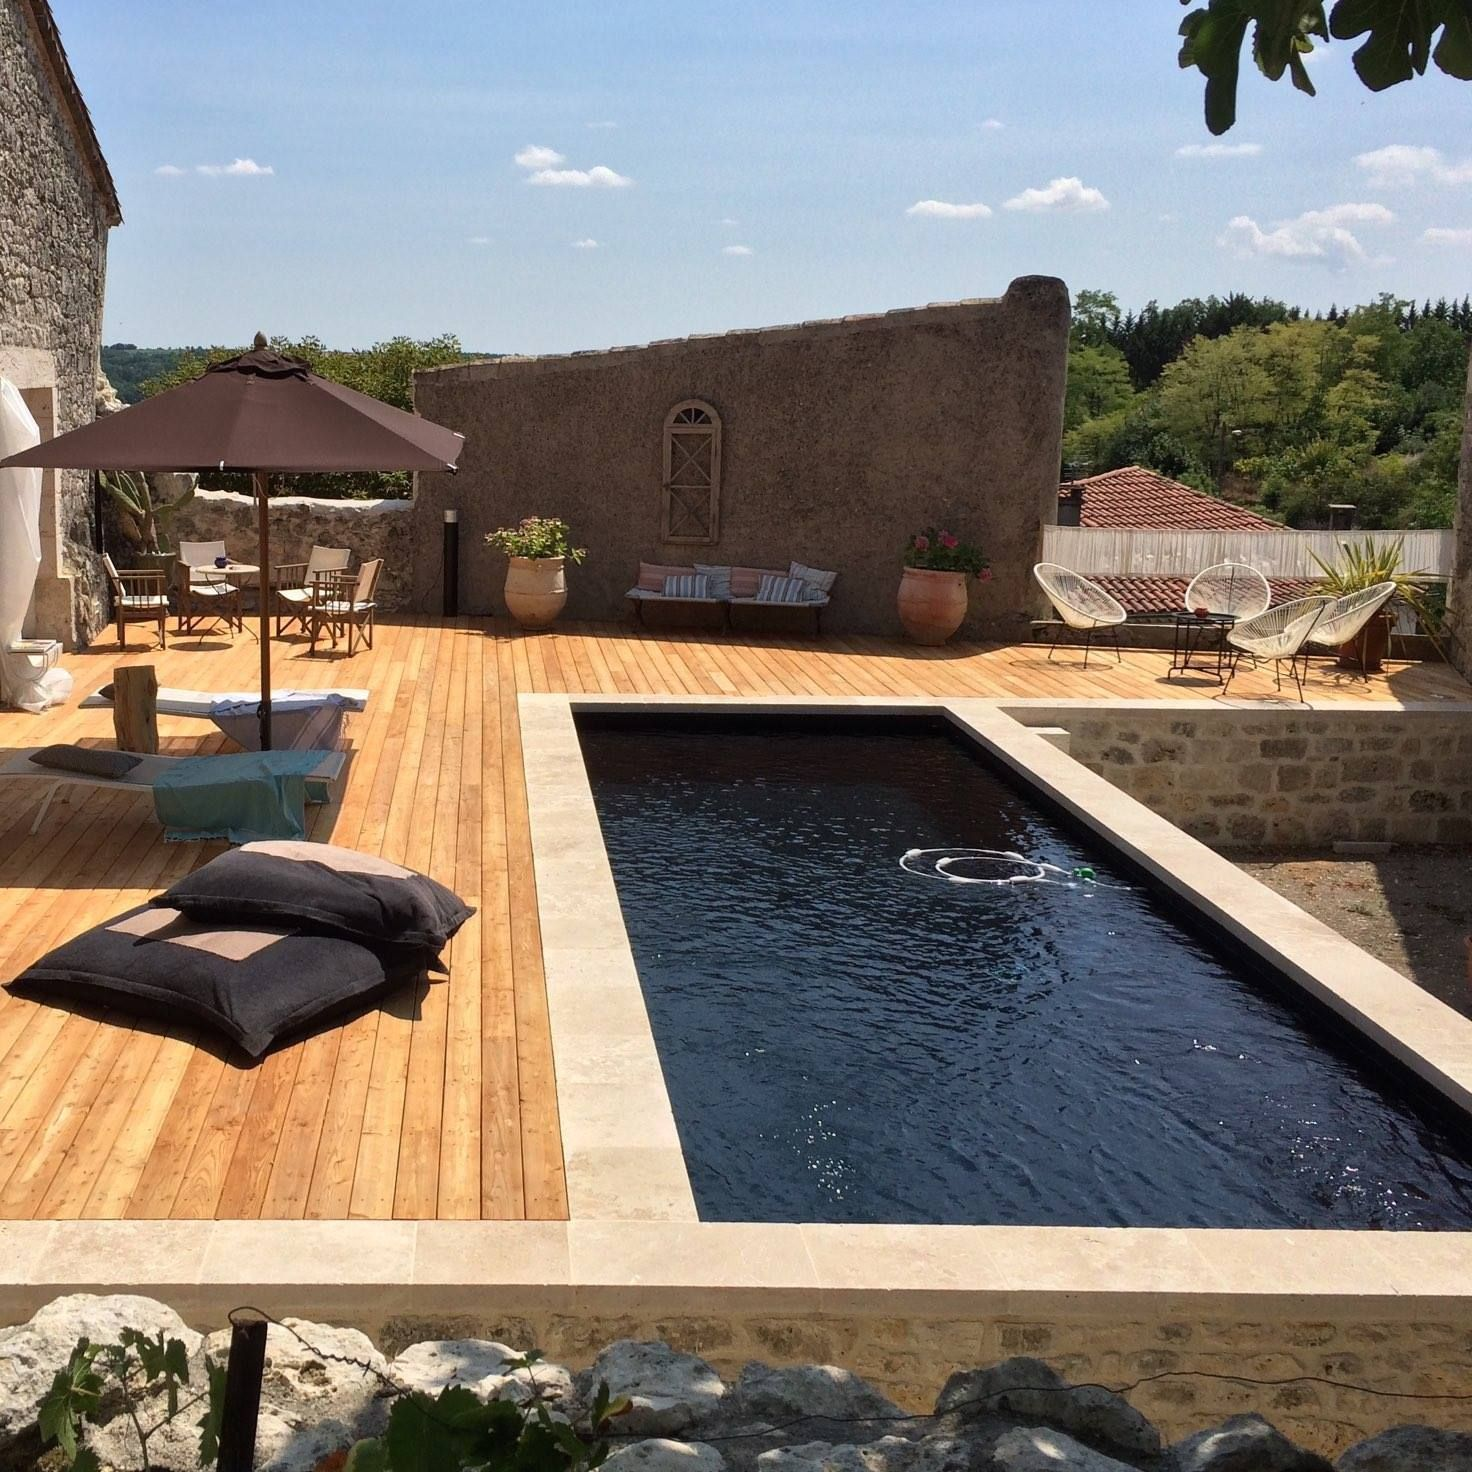 piscine liner noir  E X T E R I E U R S en 2019  Swimming pools Outdoor living areas et Patio